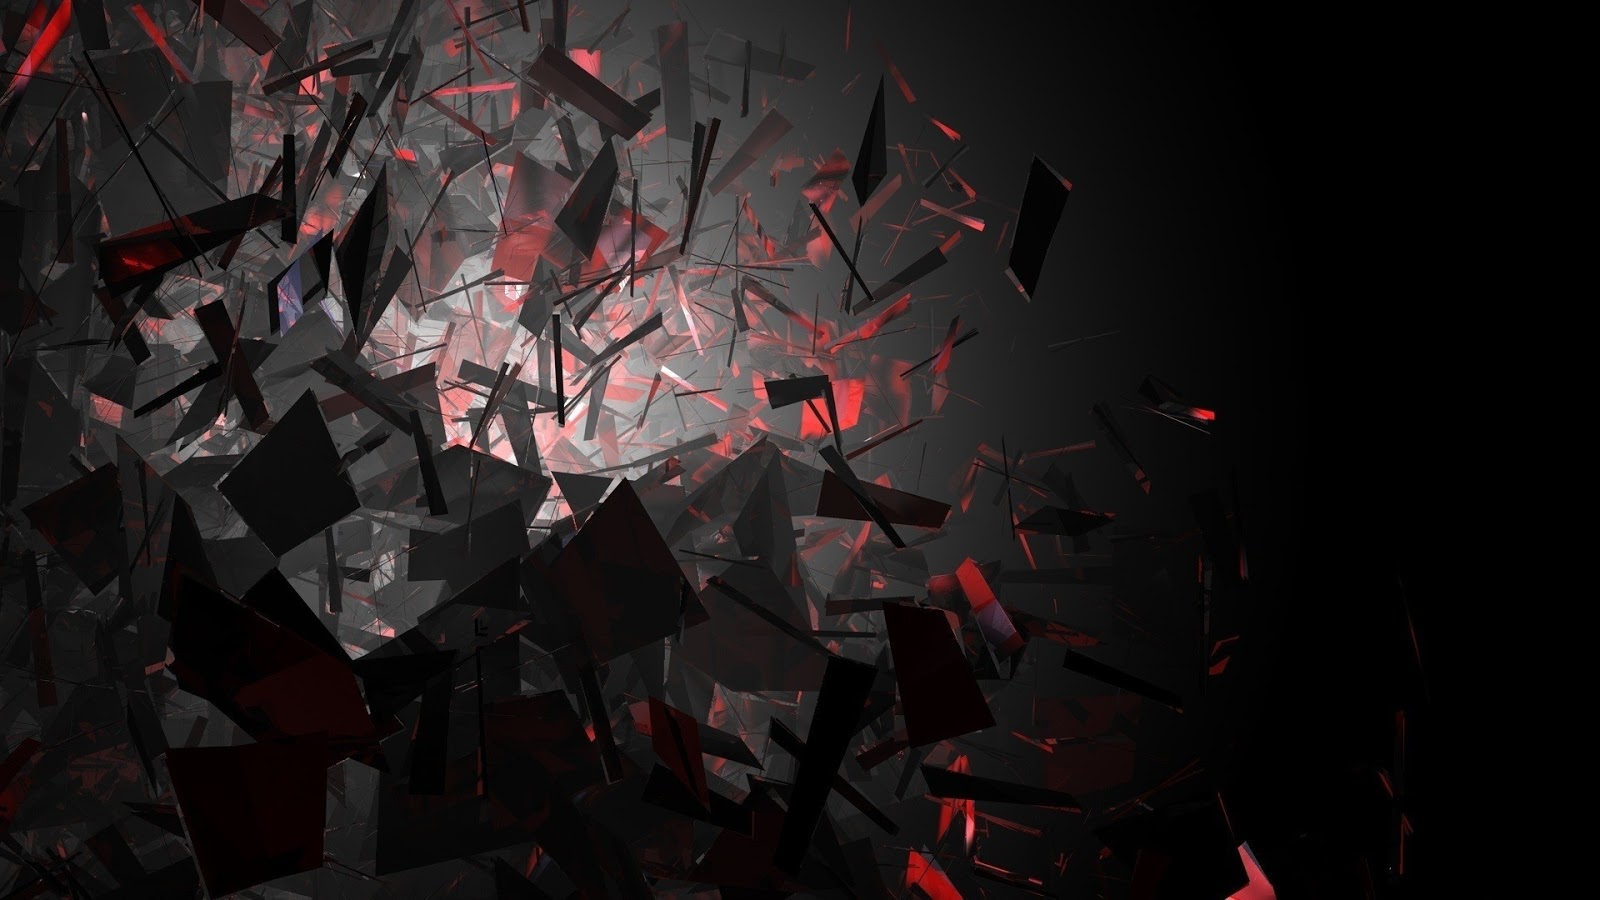 3d abstract wallpapers 1080p 3d abstract wallpapers 1080p 3d abstract 1600x900